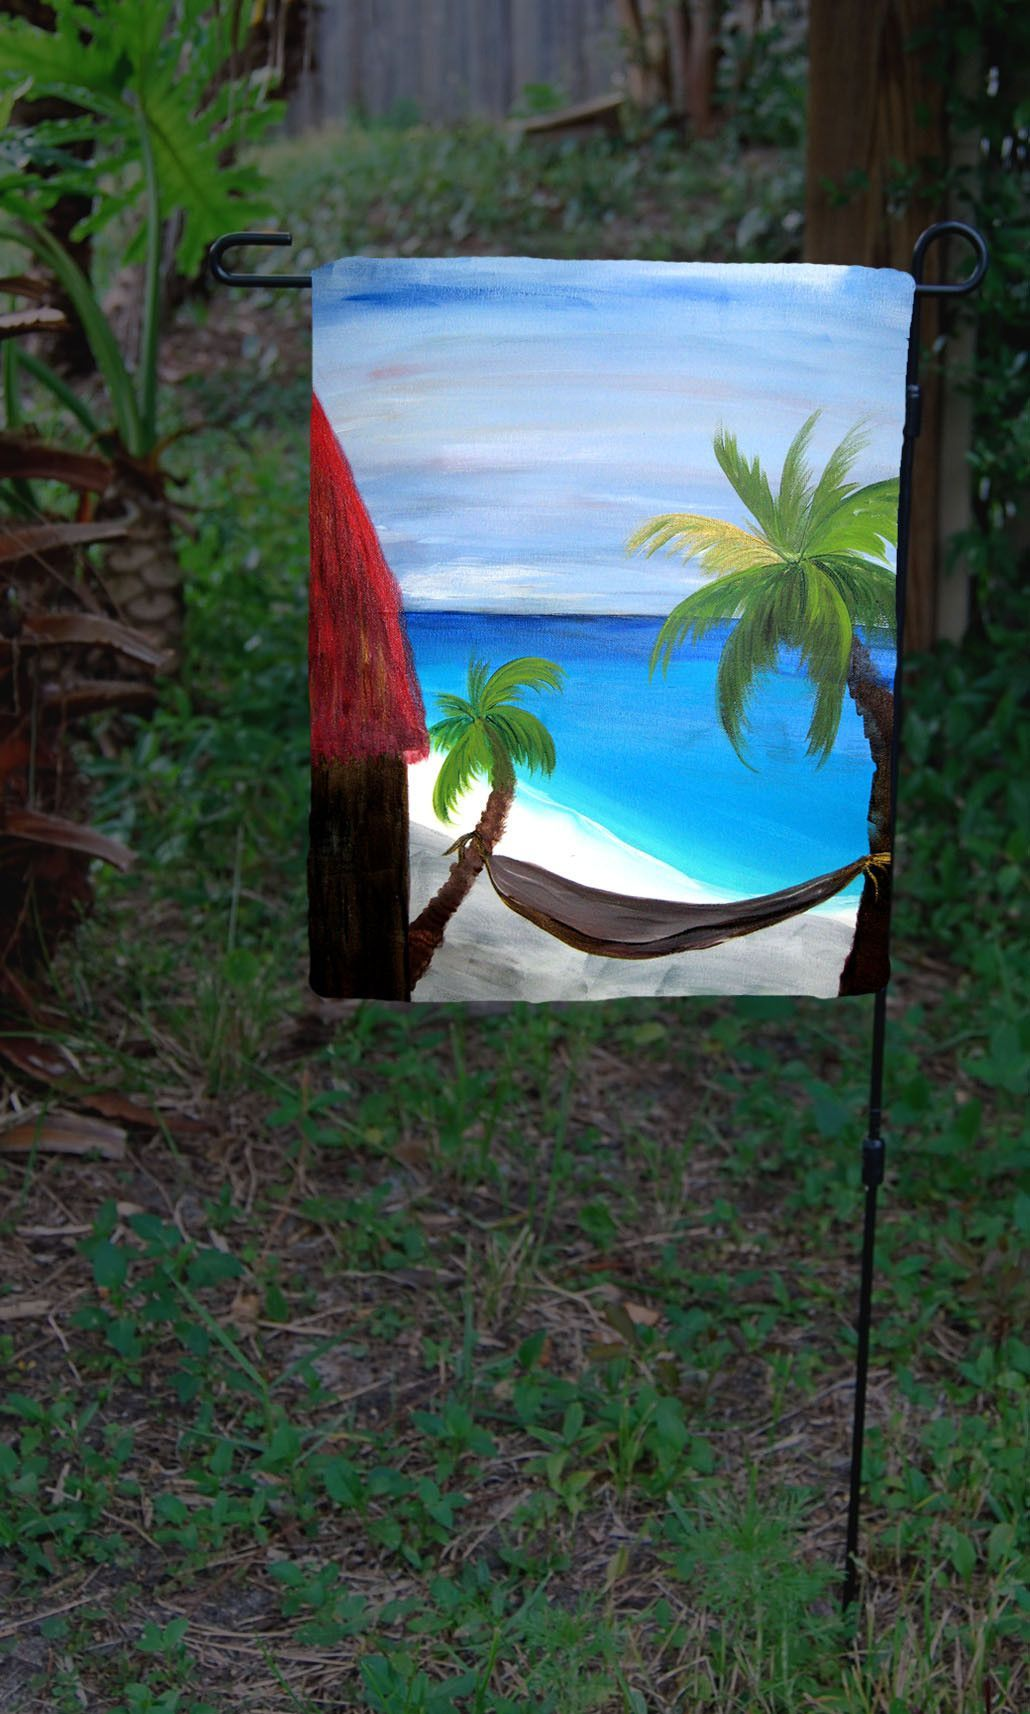 Red Tiki Hut Beach Garden Flag Garden Flag From My Art. Flags Are Made From